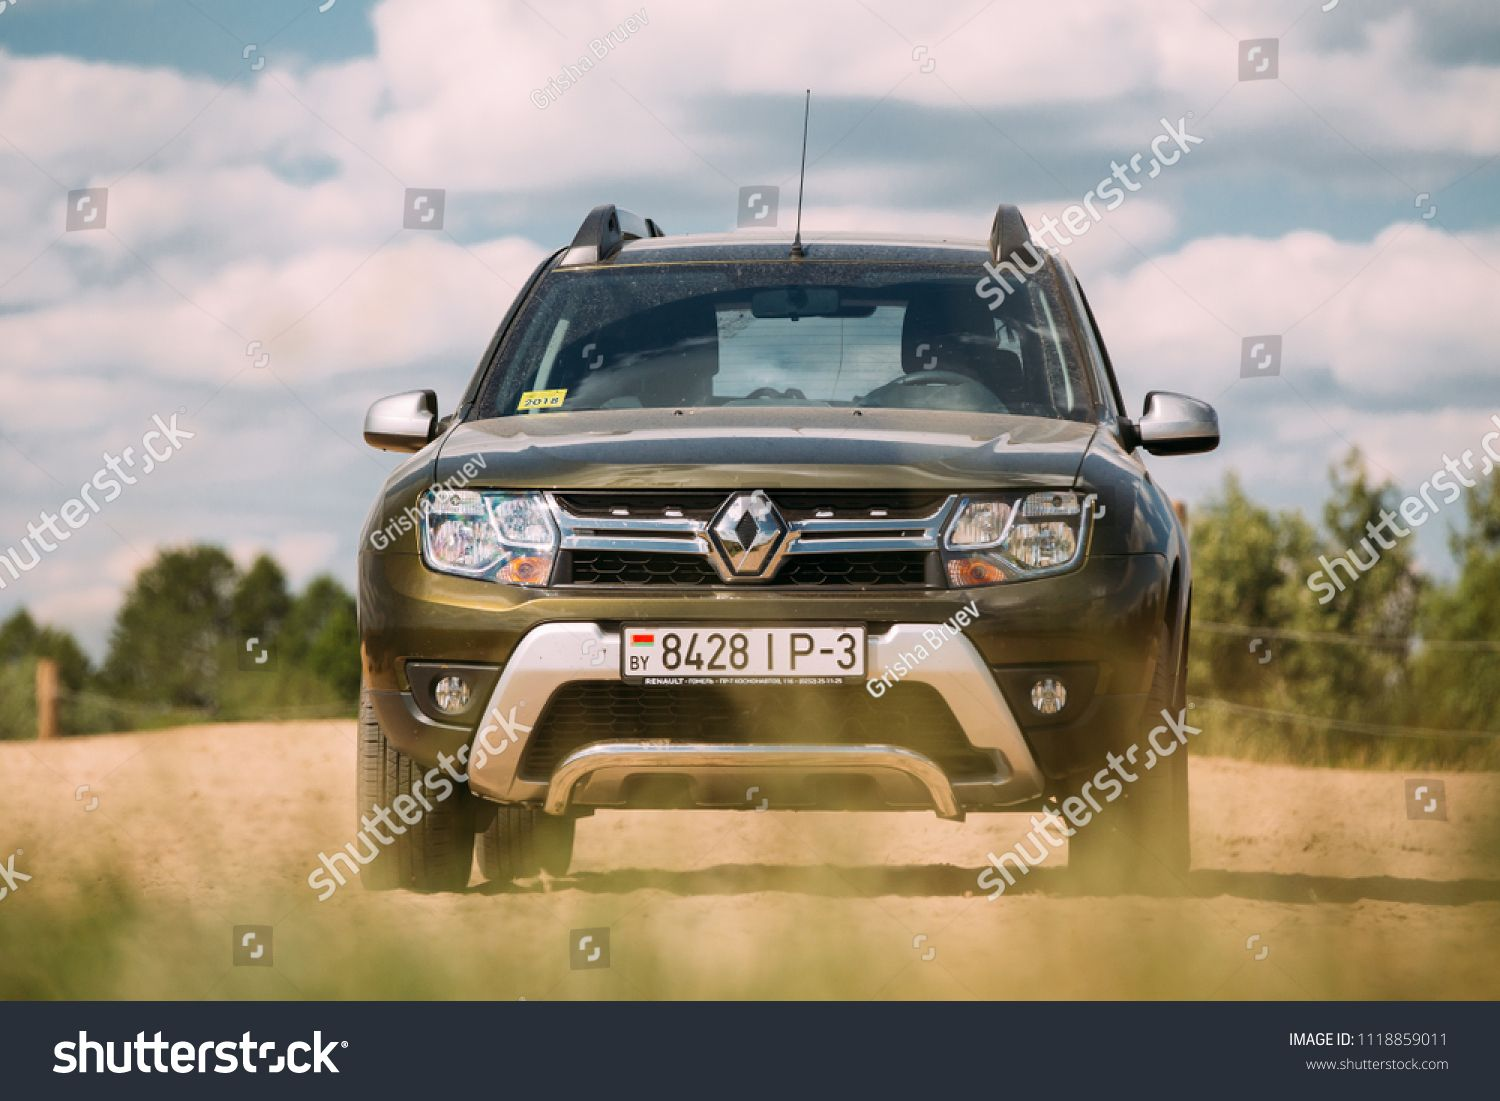 Gomel Belarus June 13 2018 Renault Duster Or Dacia Duster Suv In Countryside Landscape Duster Produced Jointly By French Man Gomel Renault Duster Renault [ 1101 x 1500 Pixel ]